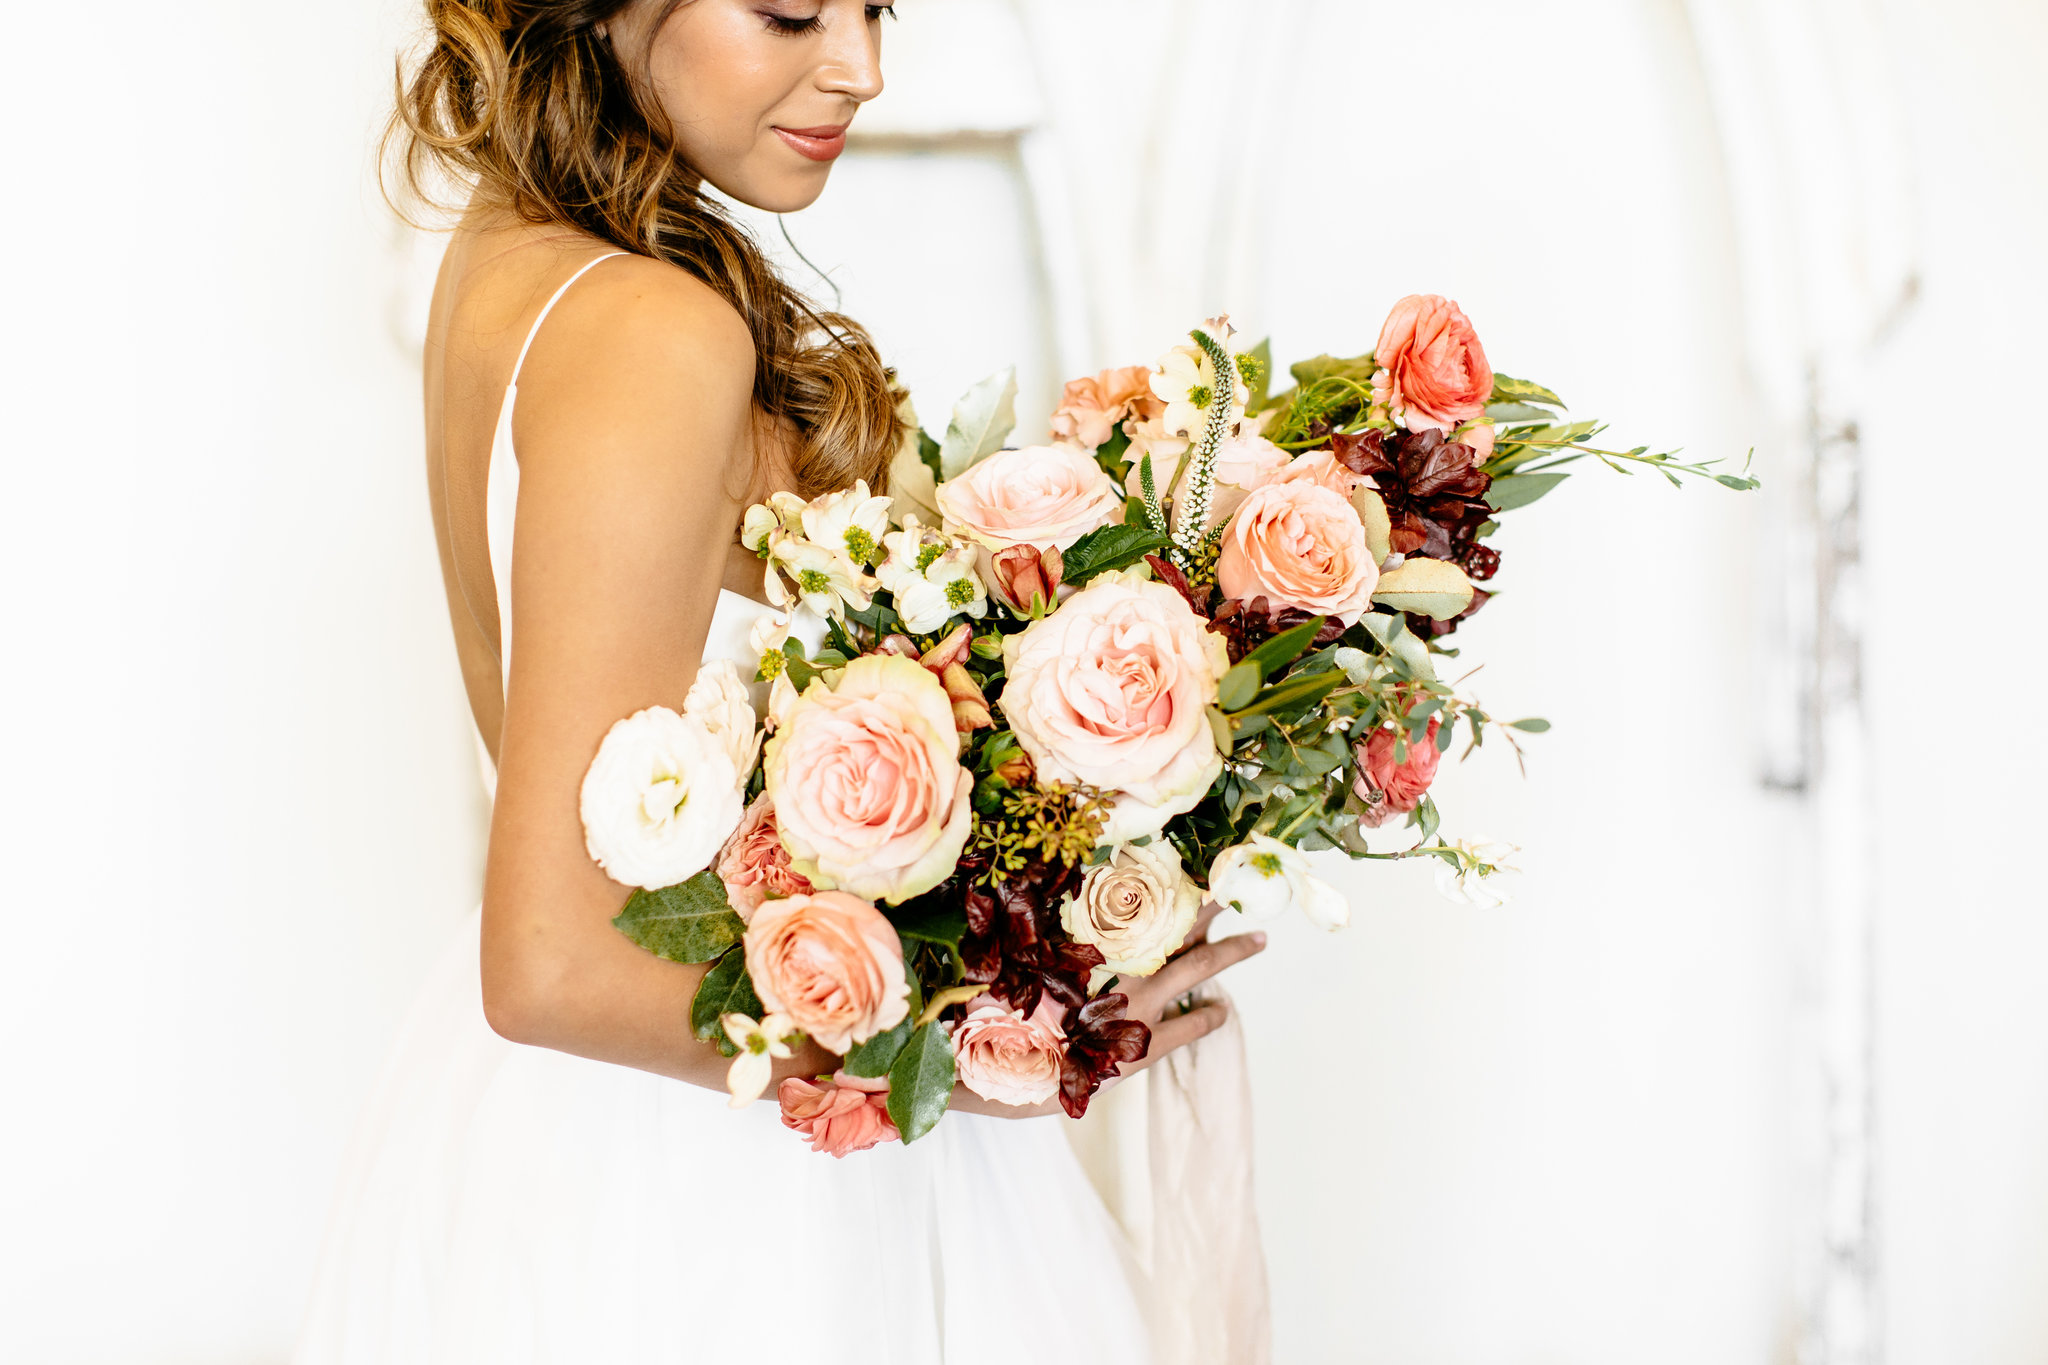 Alexa-Vossler-Photo_Dallas-Wedding-Photographer_Photoshoot-at-the-Station-McKinney_Empower-Event-58.jpg